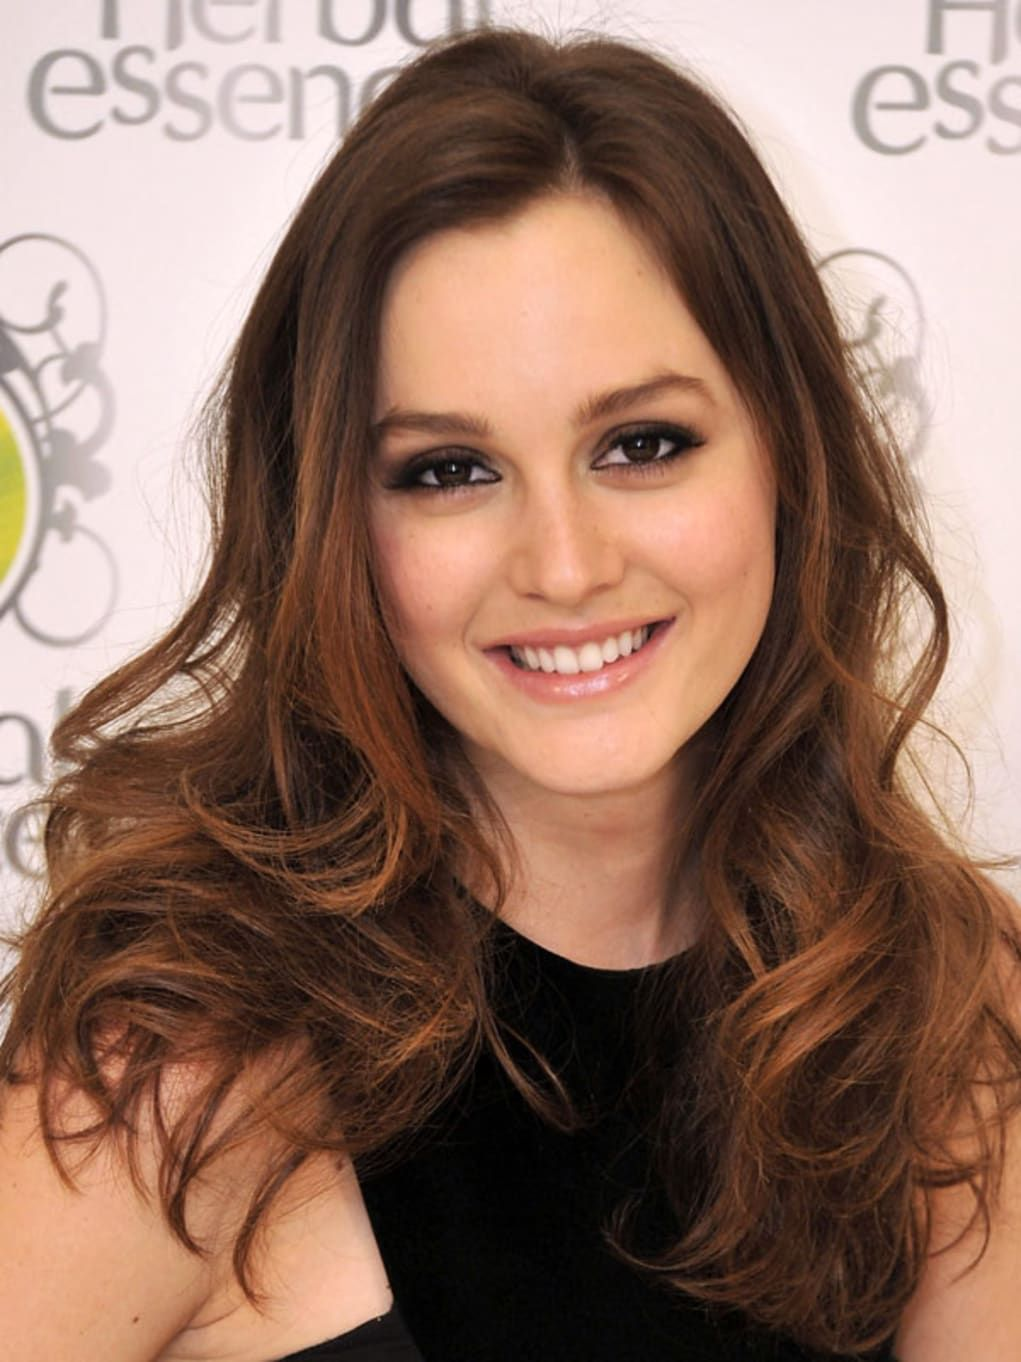 Leighton Meester S 10 Best Hair And Makeup Looks The Skincare Edit In 2020 Leighton Meester Hair Cool Hairstyles Hairstyle